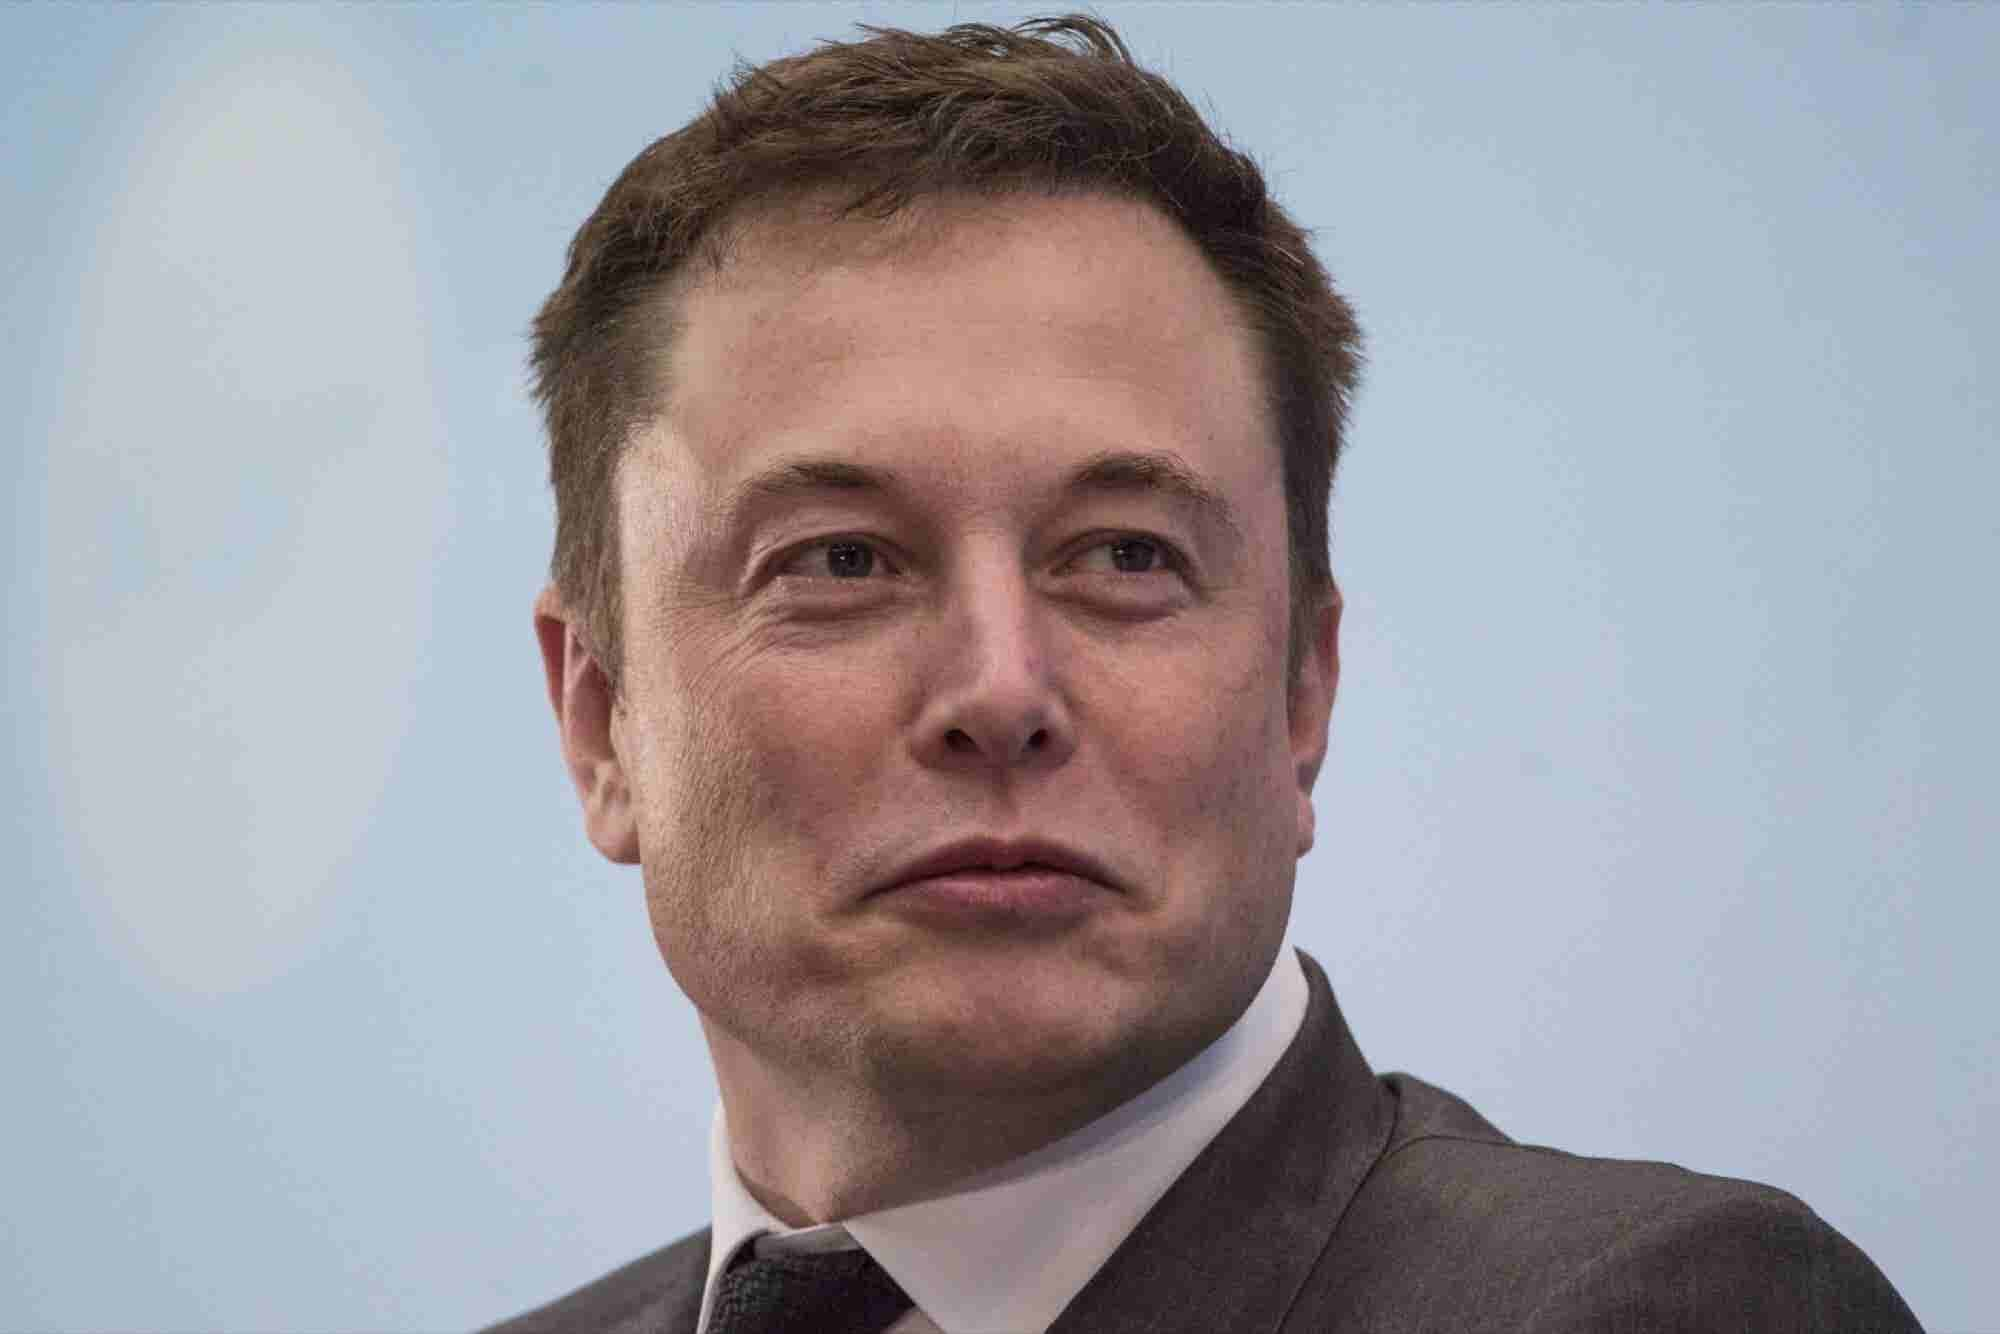 Elon Musk's Alleged Imposter Gives Reason 5,736 Why You Should Be Careful With Your Email